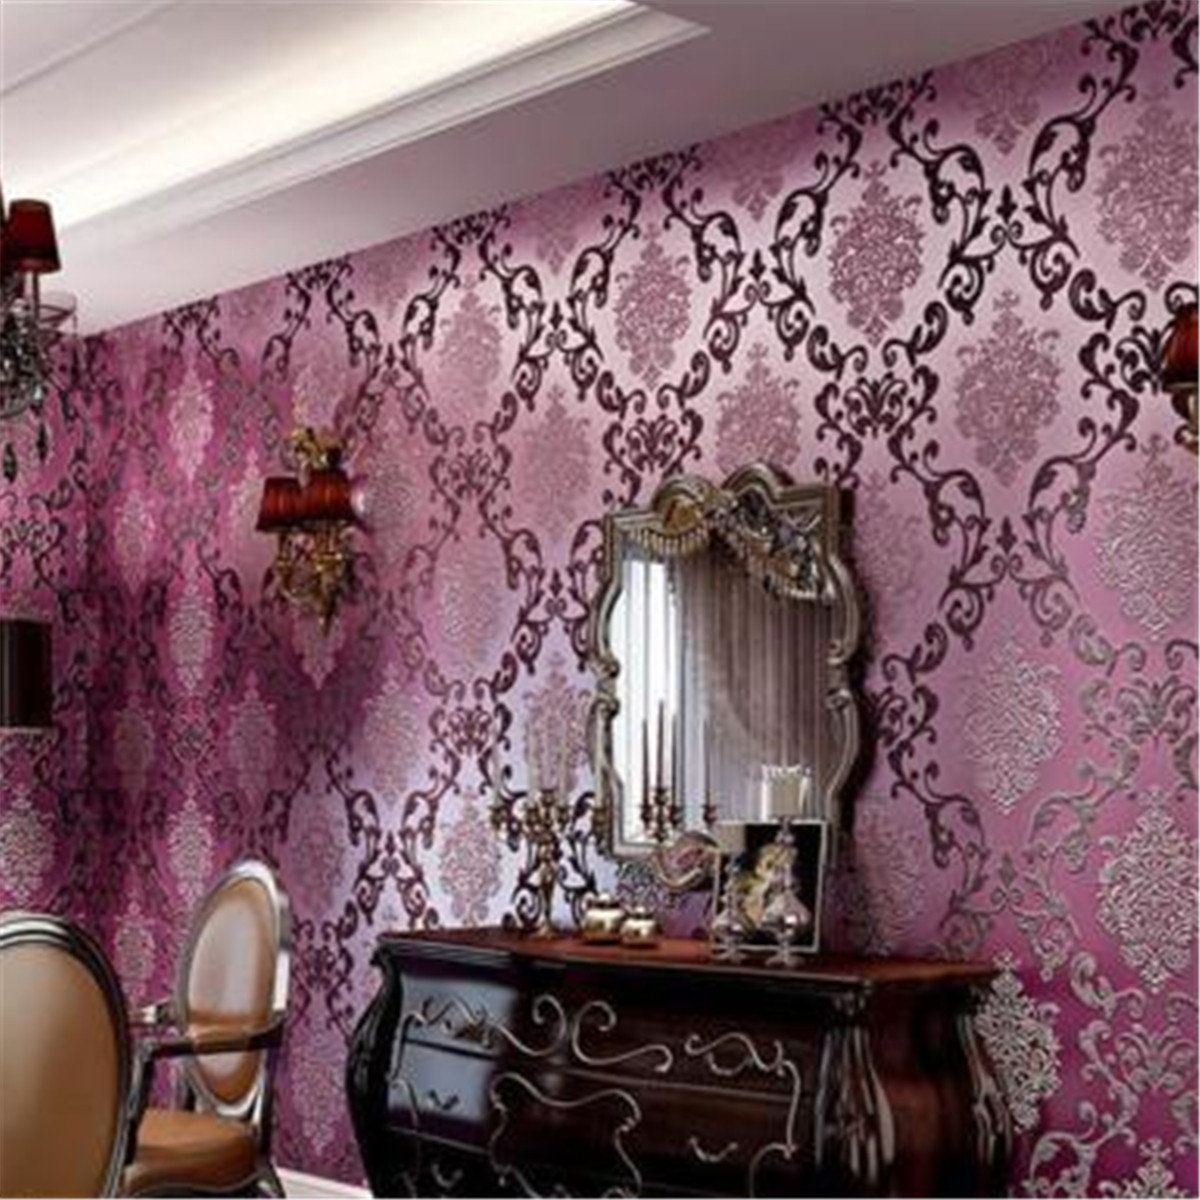 10m Roll Damask Embossed Textured Wall Decor Luxury Pu